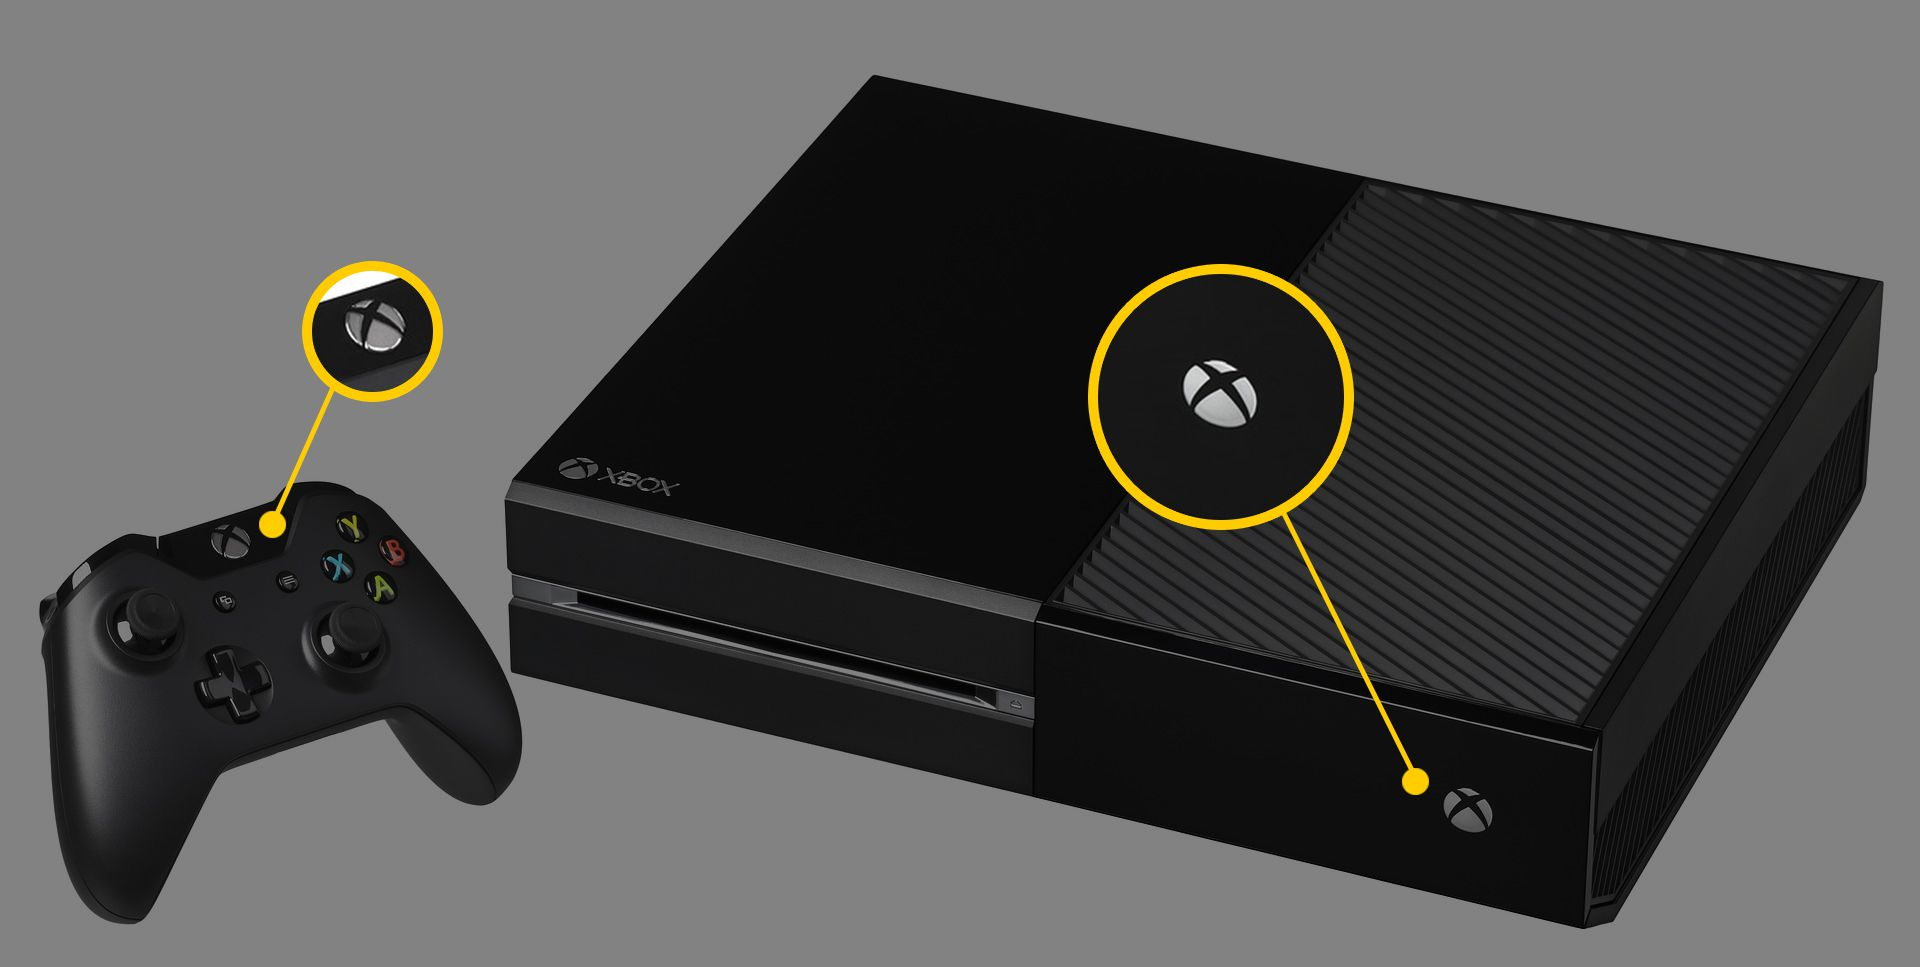 A Simple Fix for Many Xbox One Problems